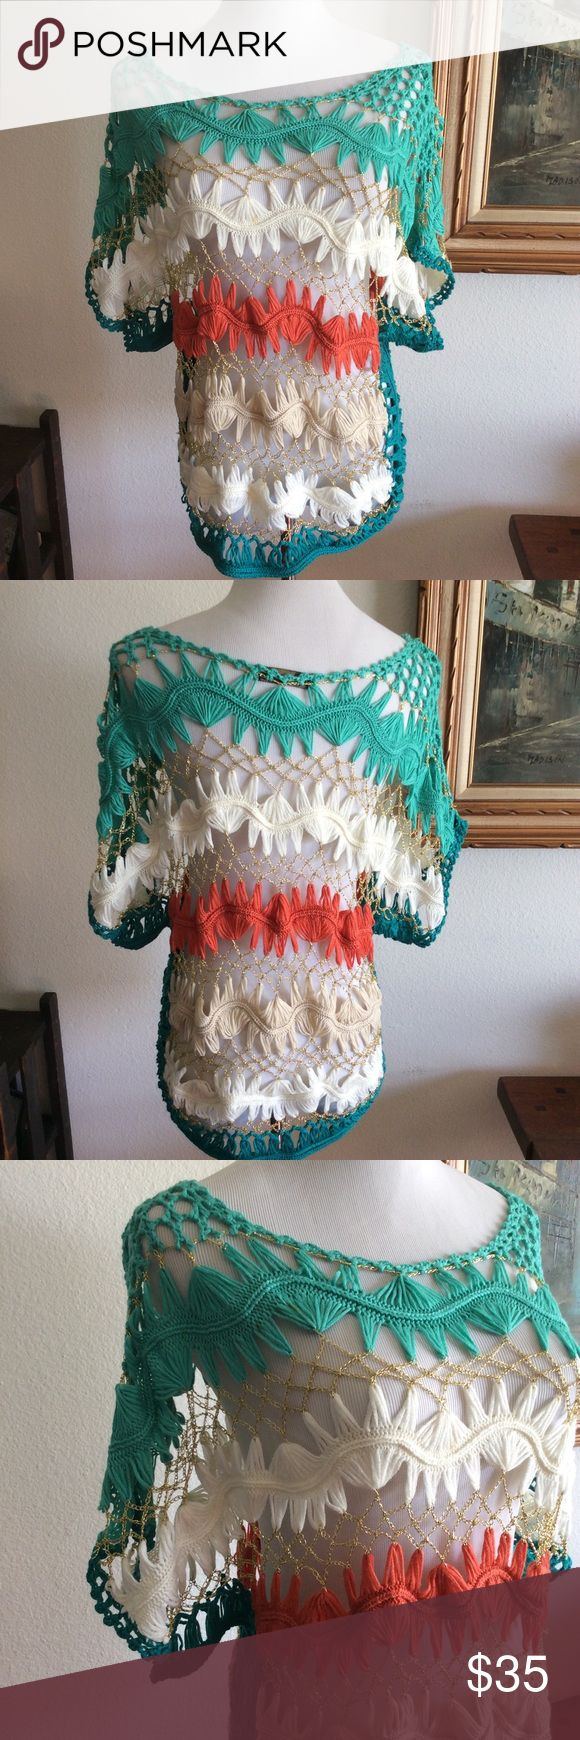 Crochet short sleeve top cover, knit Size M , colors white, green ,guava and gold details, great with jeans, great condition Tops Tees - Short Sleeve